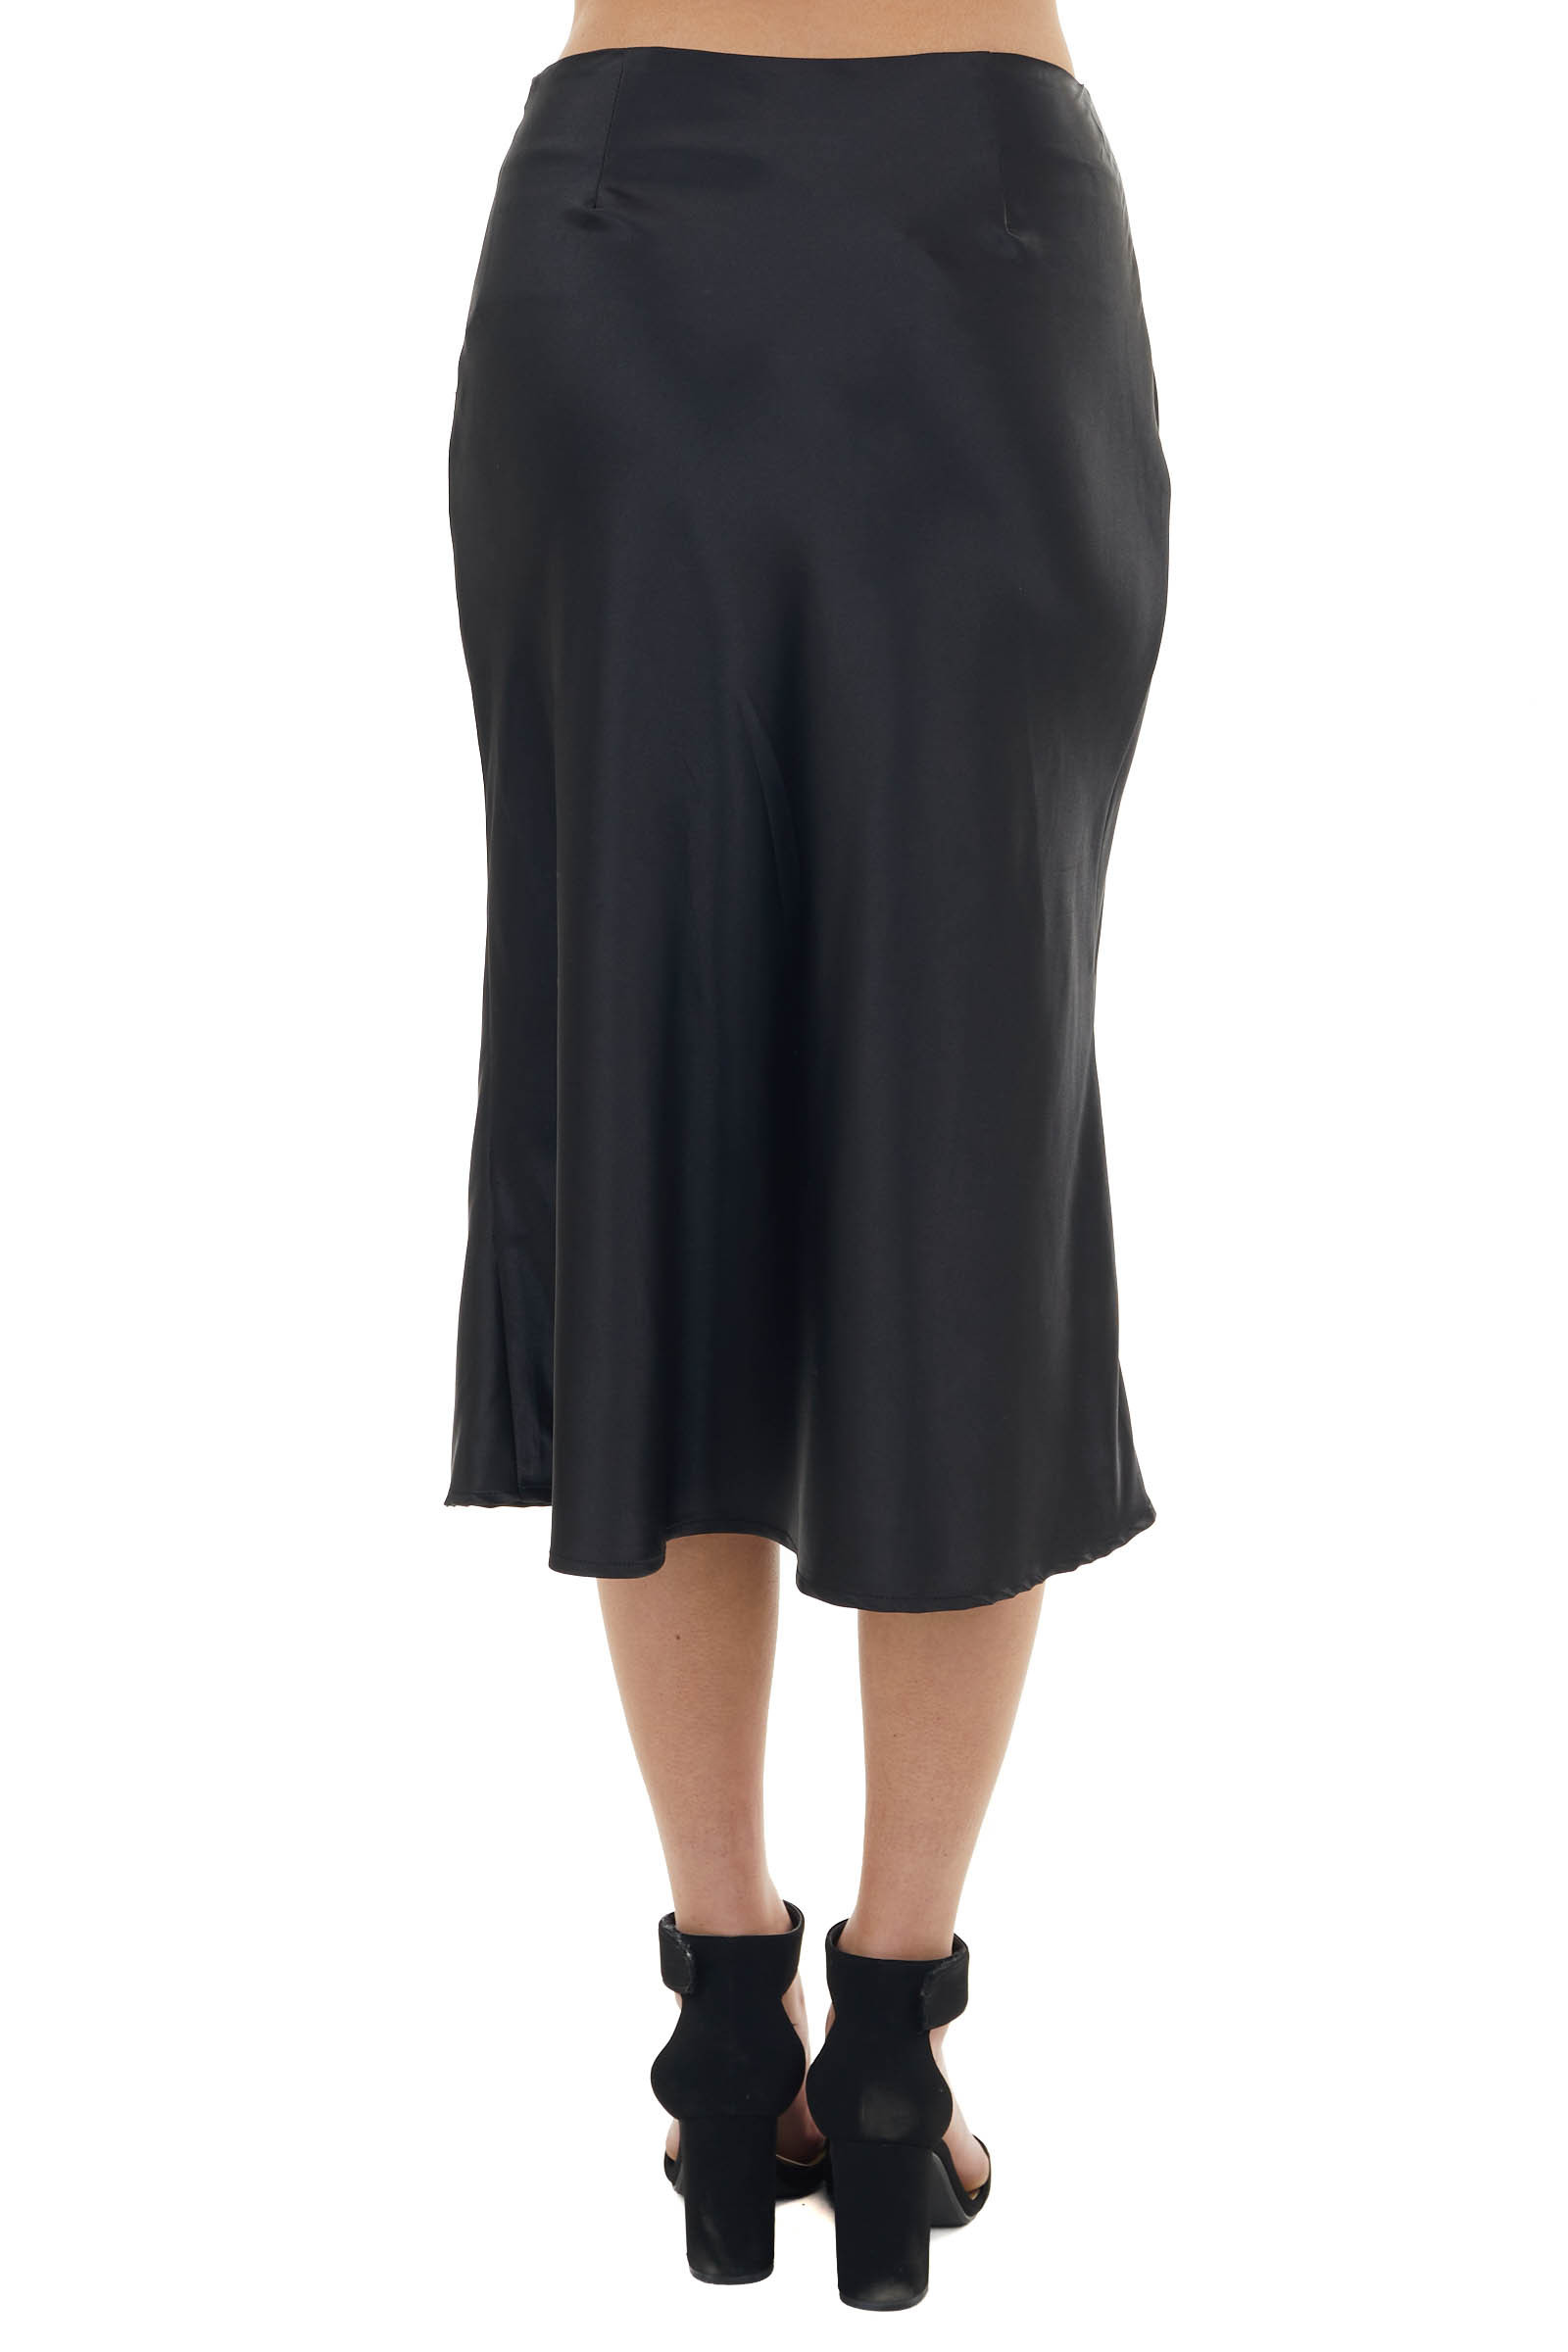 Black Woven Chiffon Fitted Midi Skirt with Zip Closure